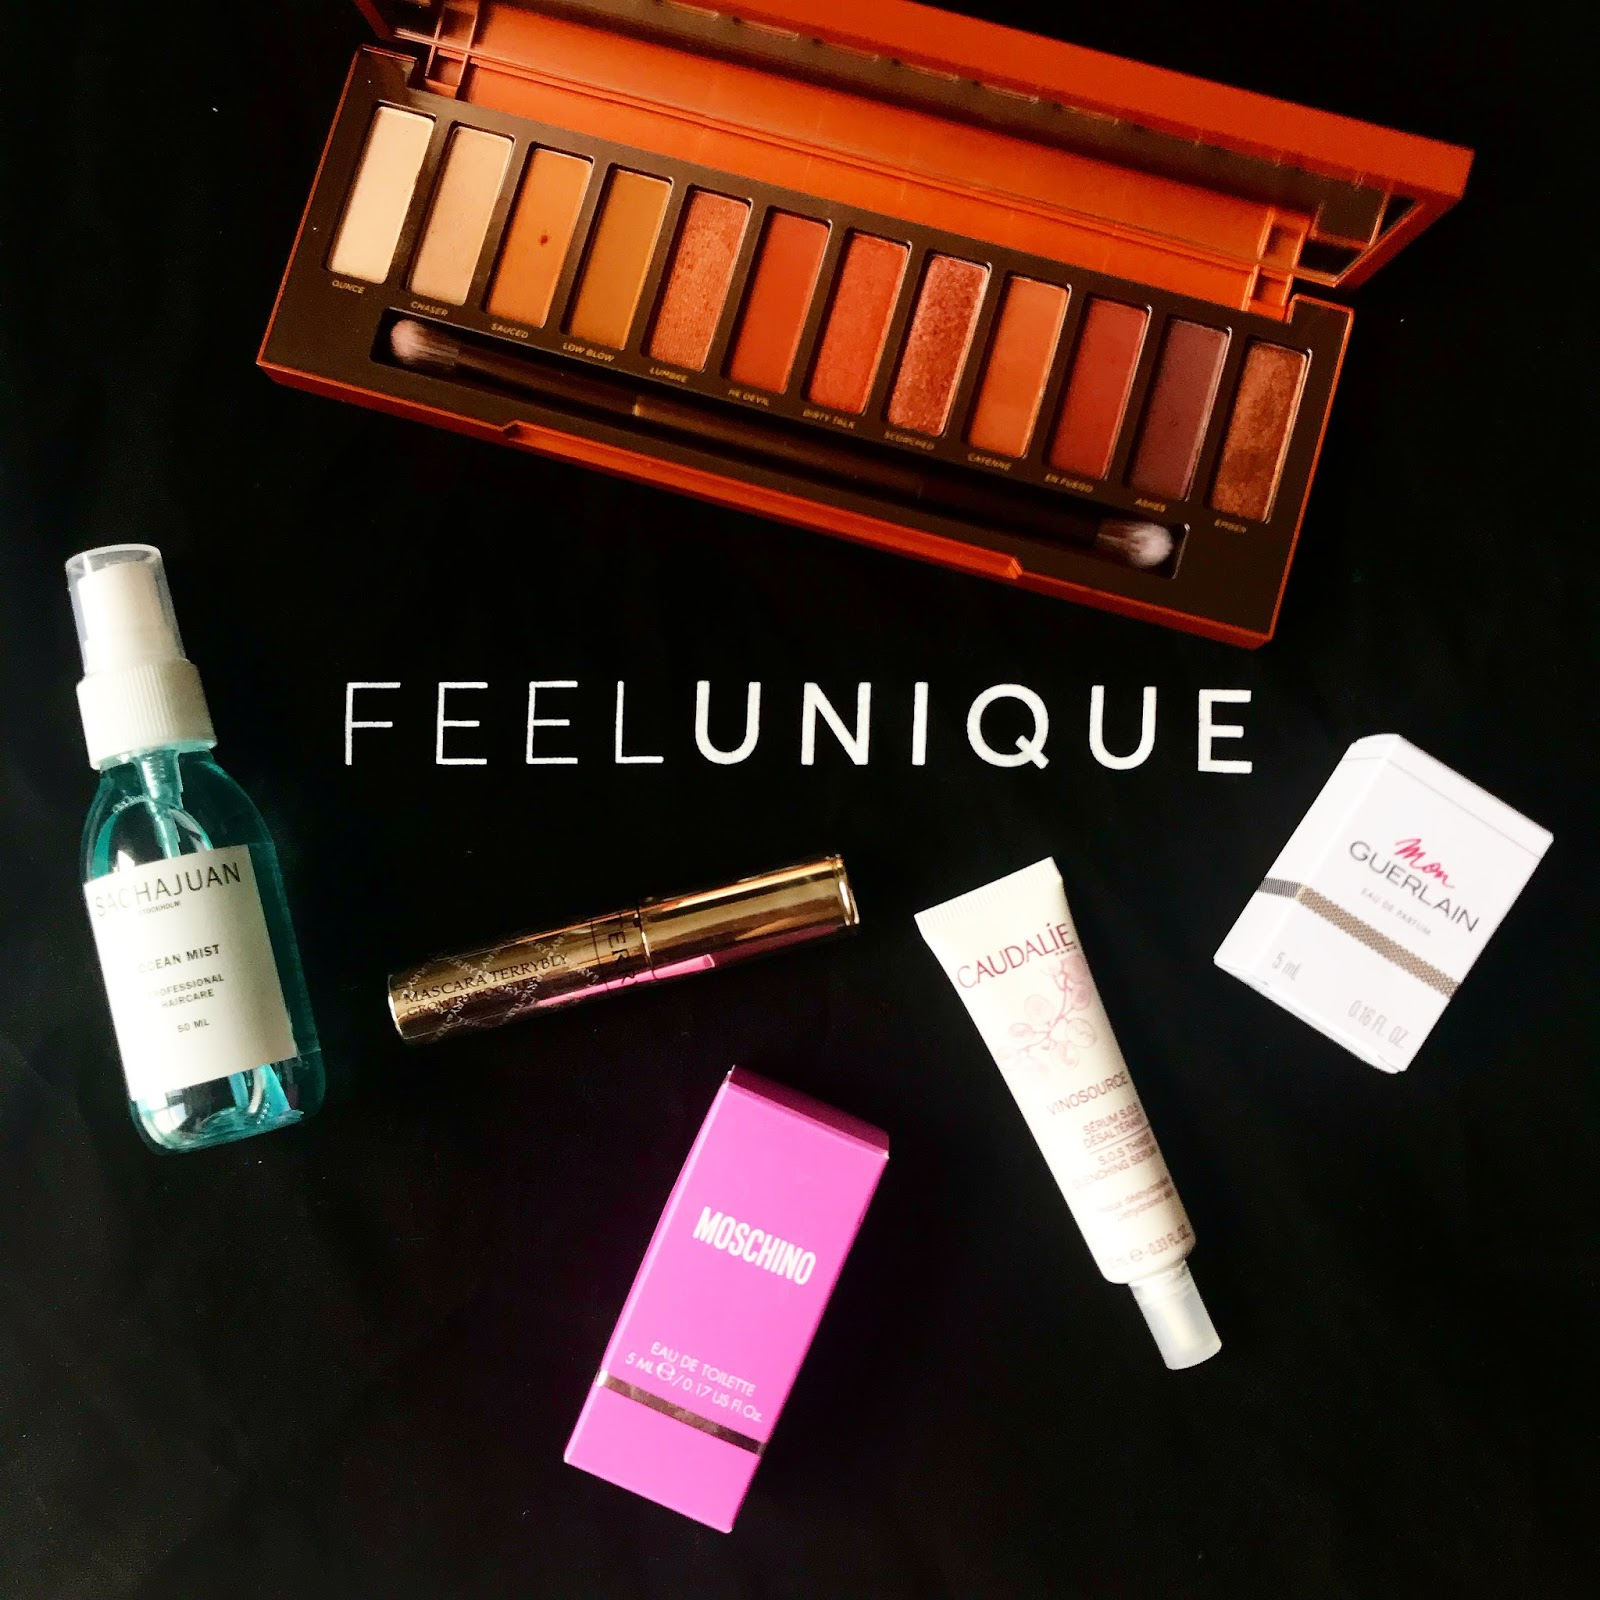 THE FEEL UNIQUE #SEASONTOSHINE POP UP | THE URBAN DECAY NAKED HEAT PALETTE